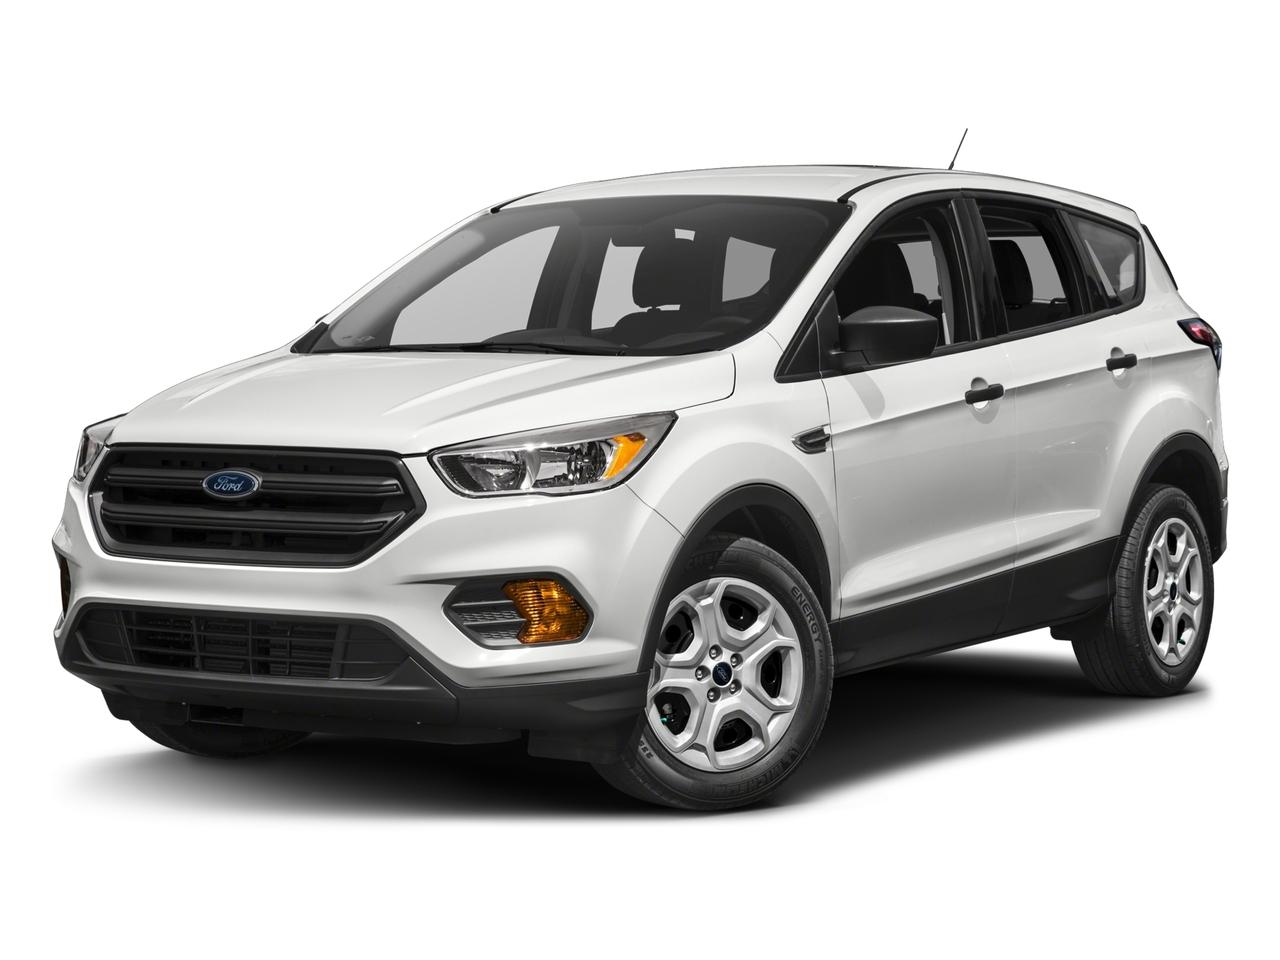 2017 Ford Escape Vehicle Photo in Rosenberg, TX 77471